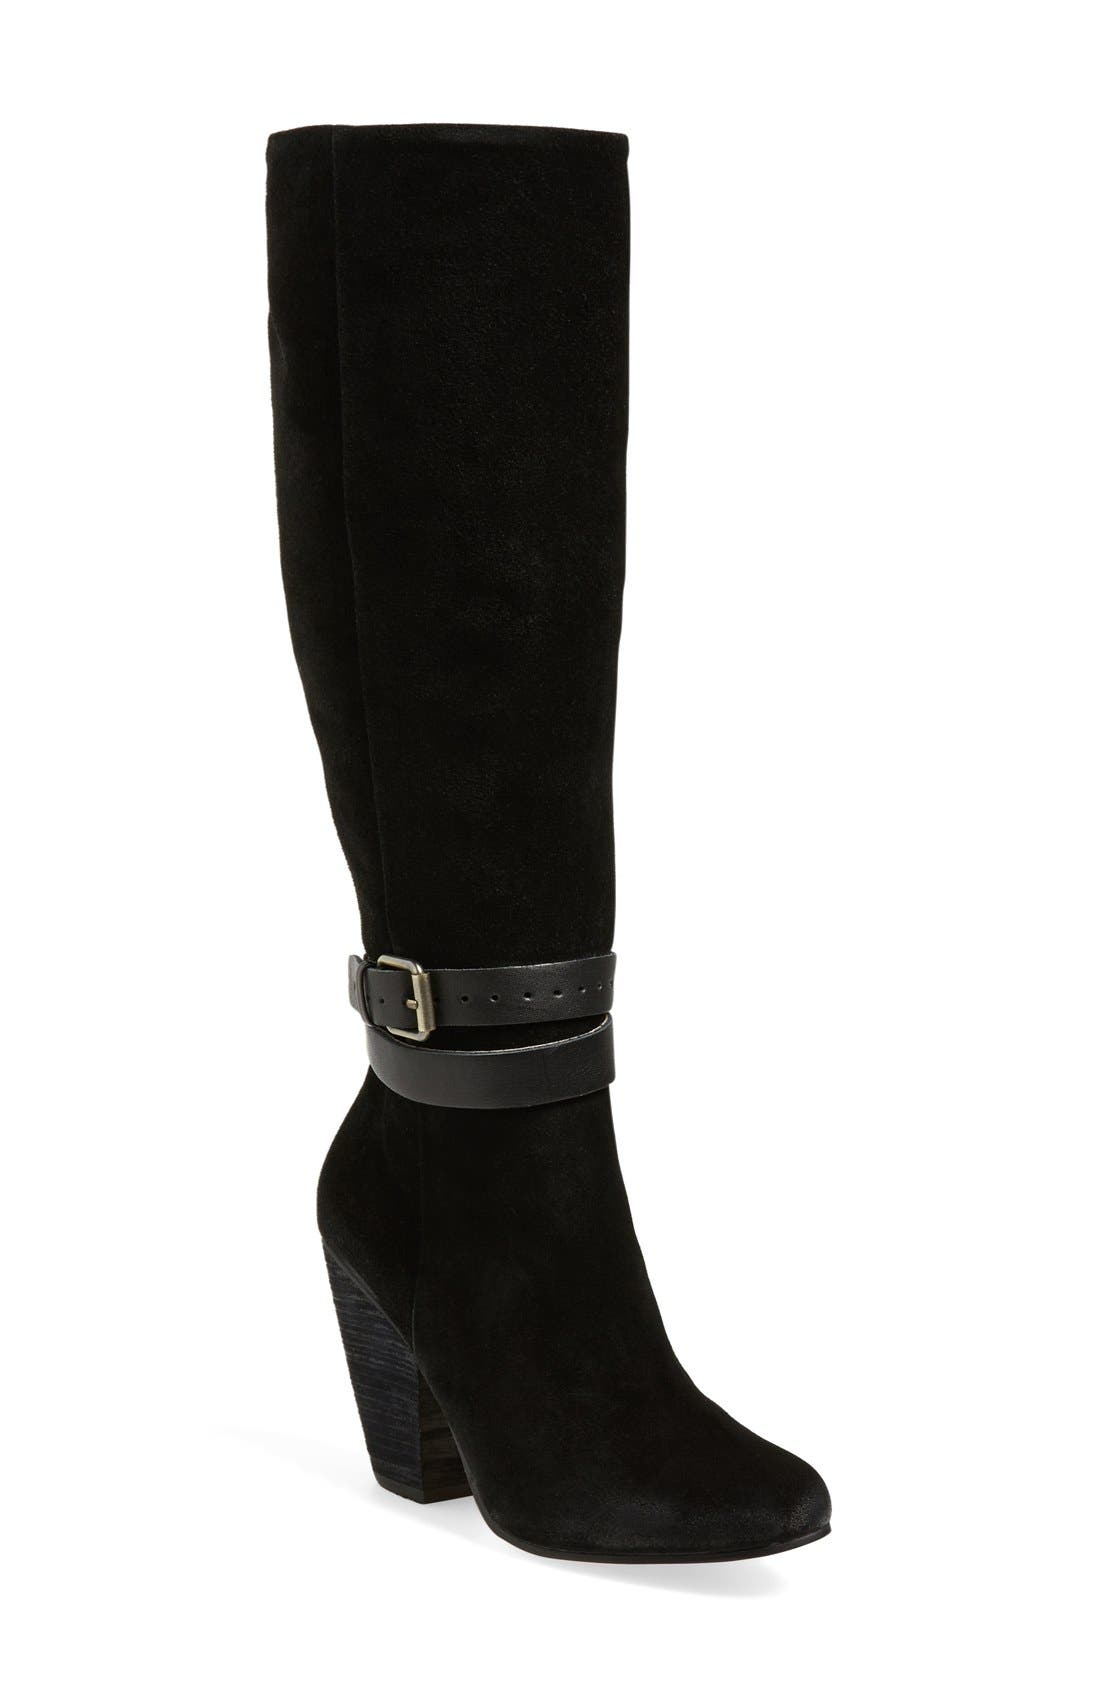 Alternate Image 1 Selected - Corso Como 'Aspire' Tall Boot (Women)